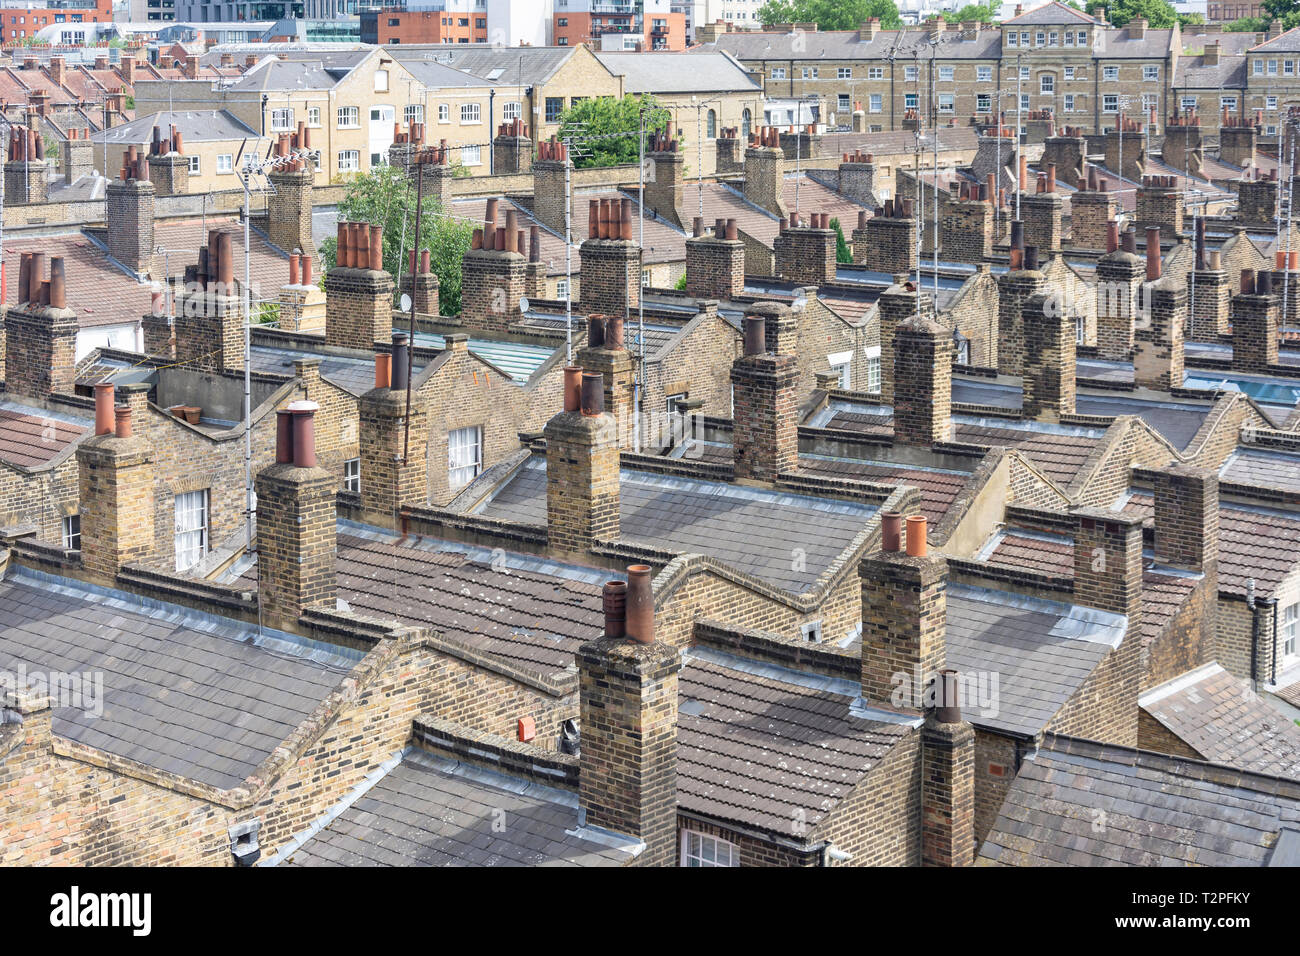 Georgian terraced house roofs and chimneys, Southwark,  The London Borough of Southwark, Greater London, England, United Kingdom - Stock Image